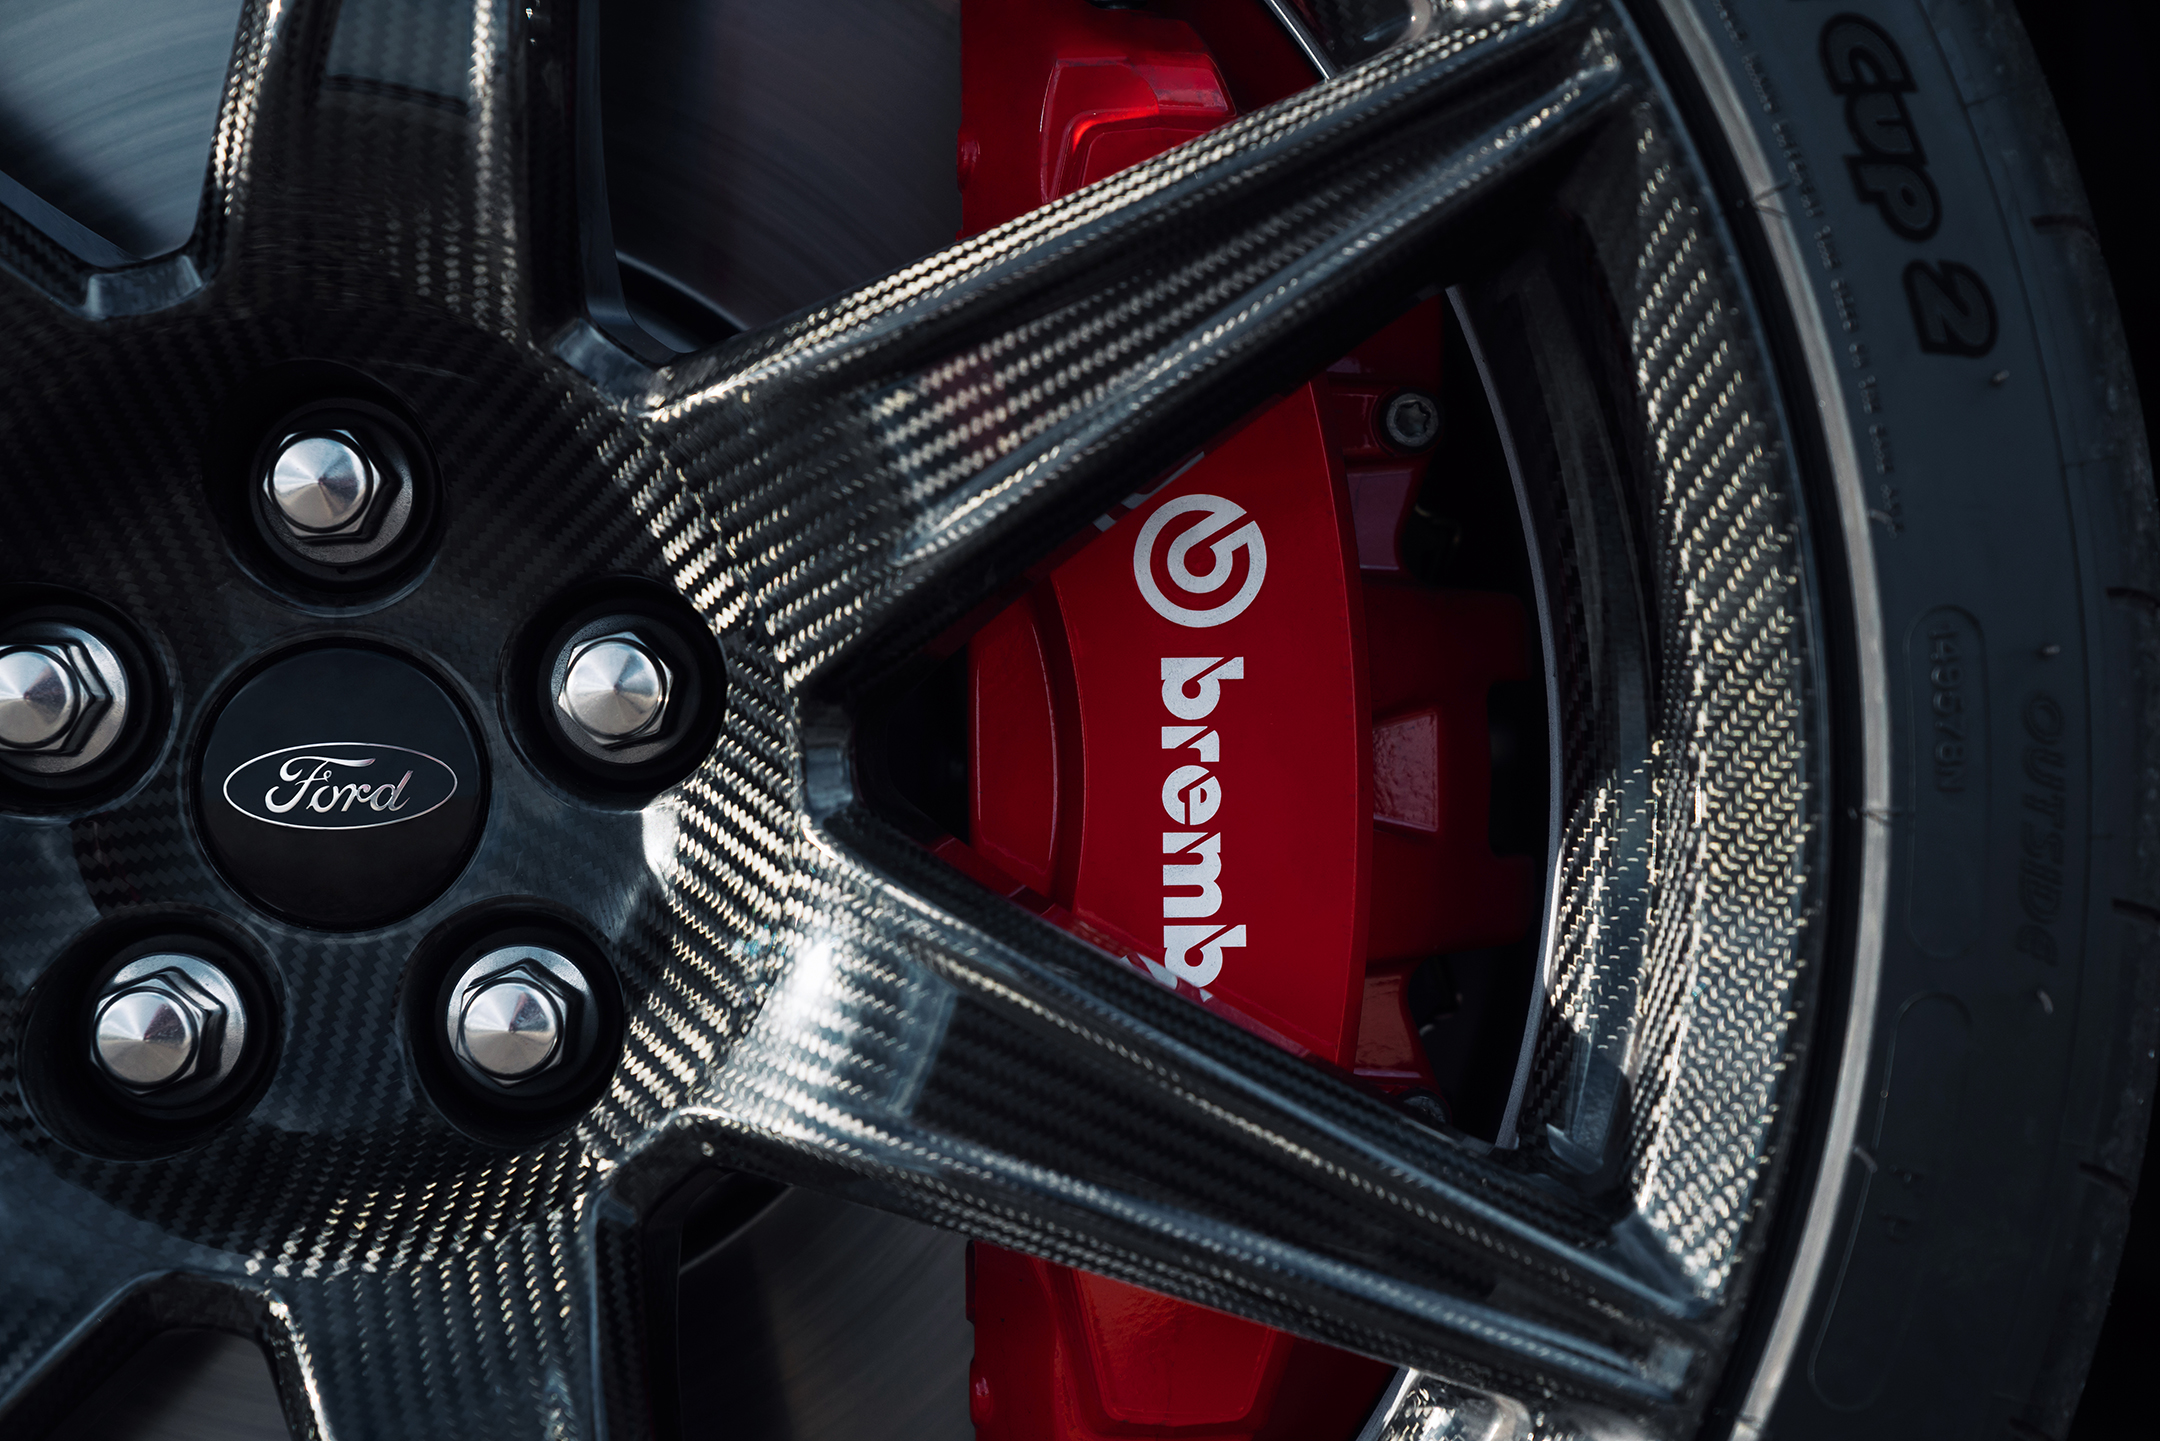 Ford Mustang 2020 Shelby GT500 - 2019 - brake disk / disque de frein - Brembo